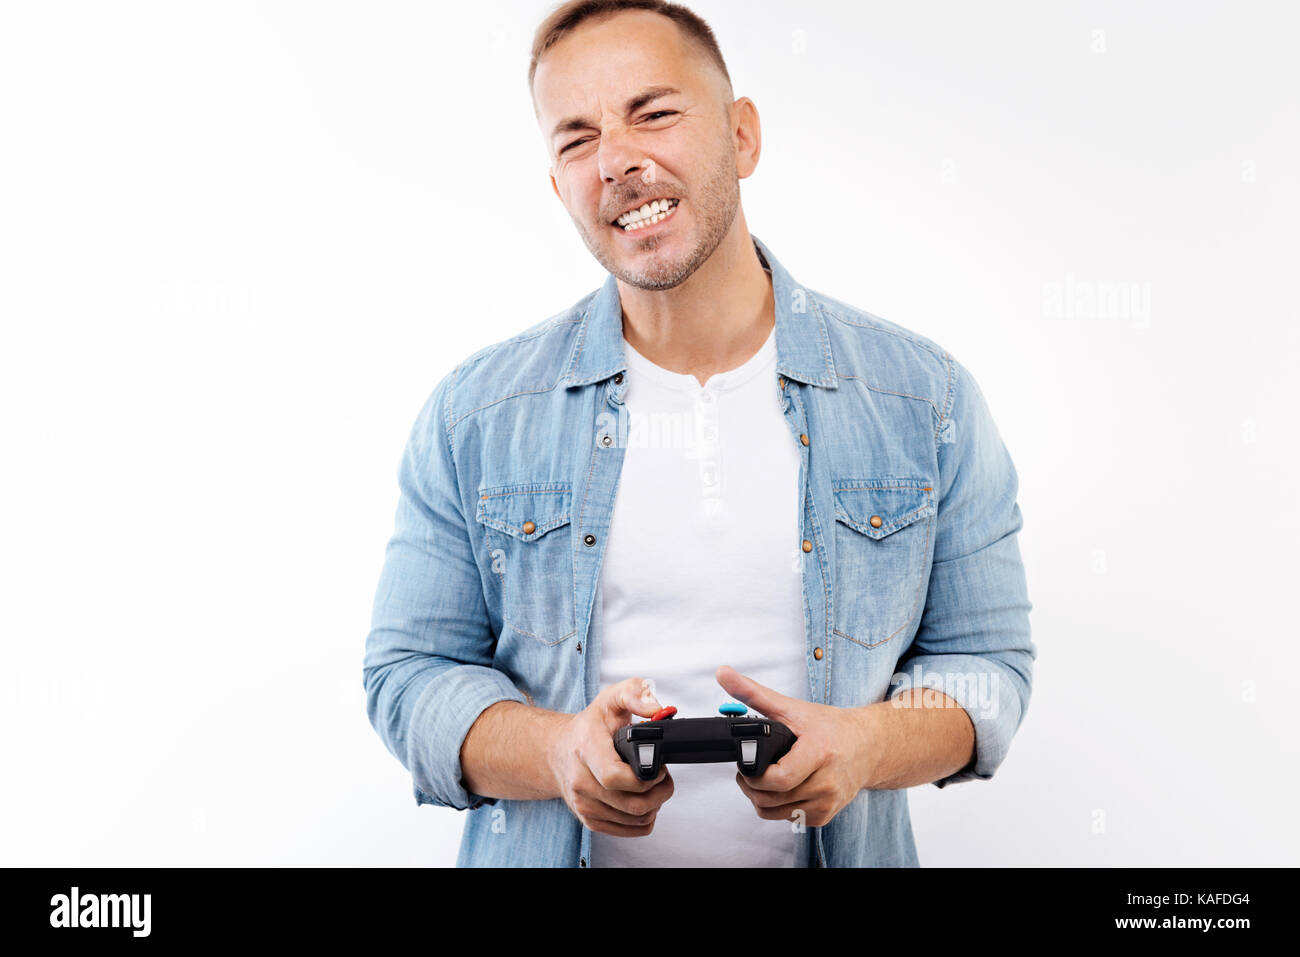 Young man grimacing after losing in video game - Stock Image